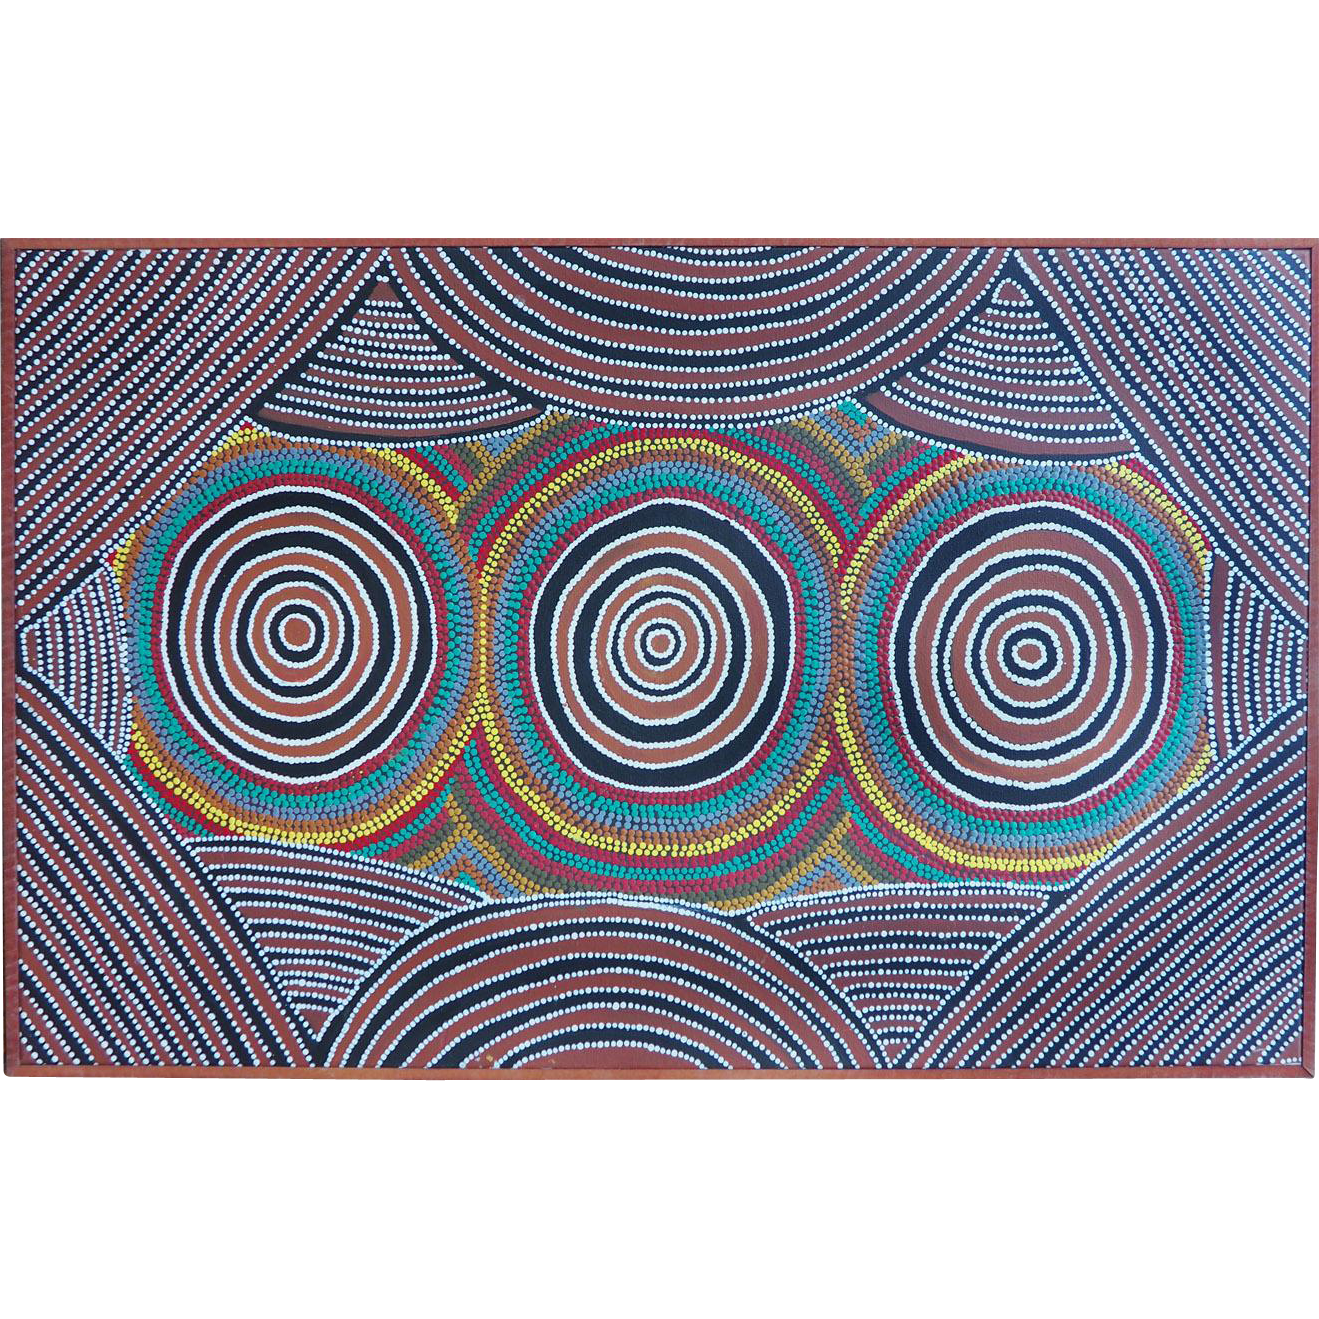 Bush Plum Ceremony original abstract aboriginal painting by Henry Dixon Petyarre Australia